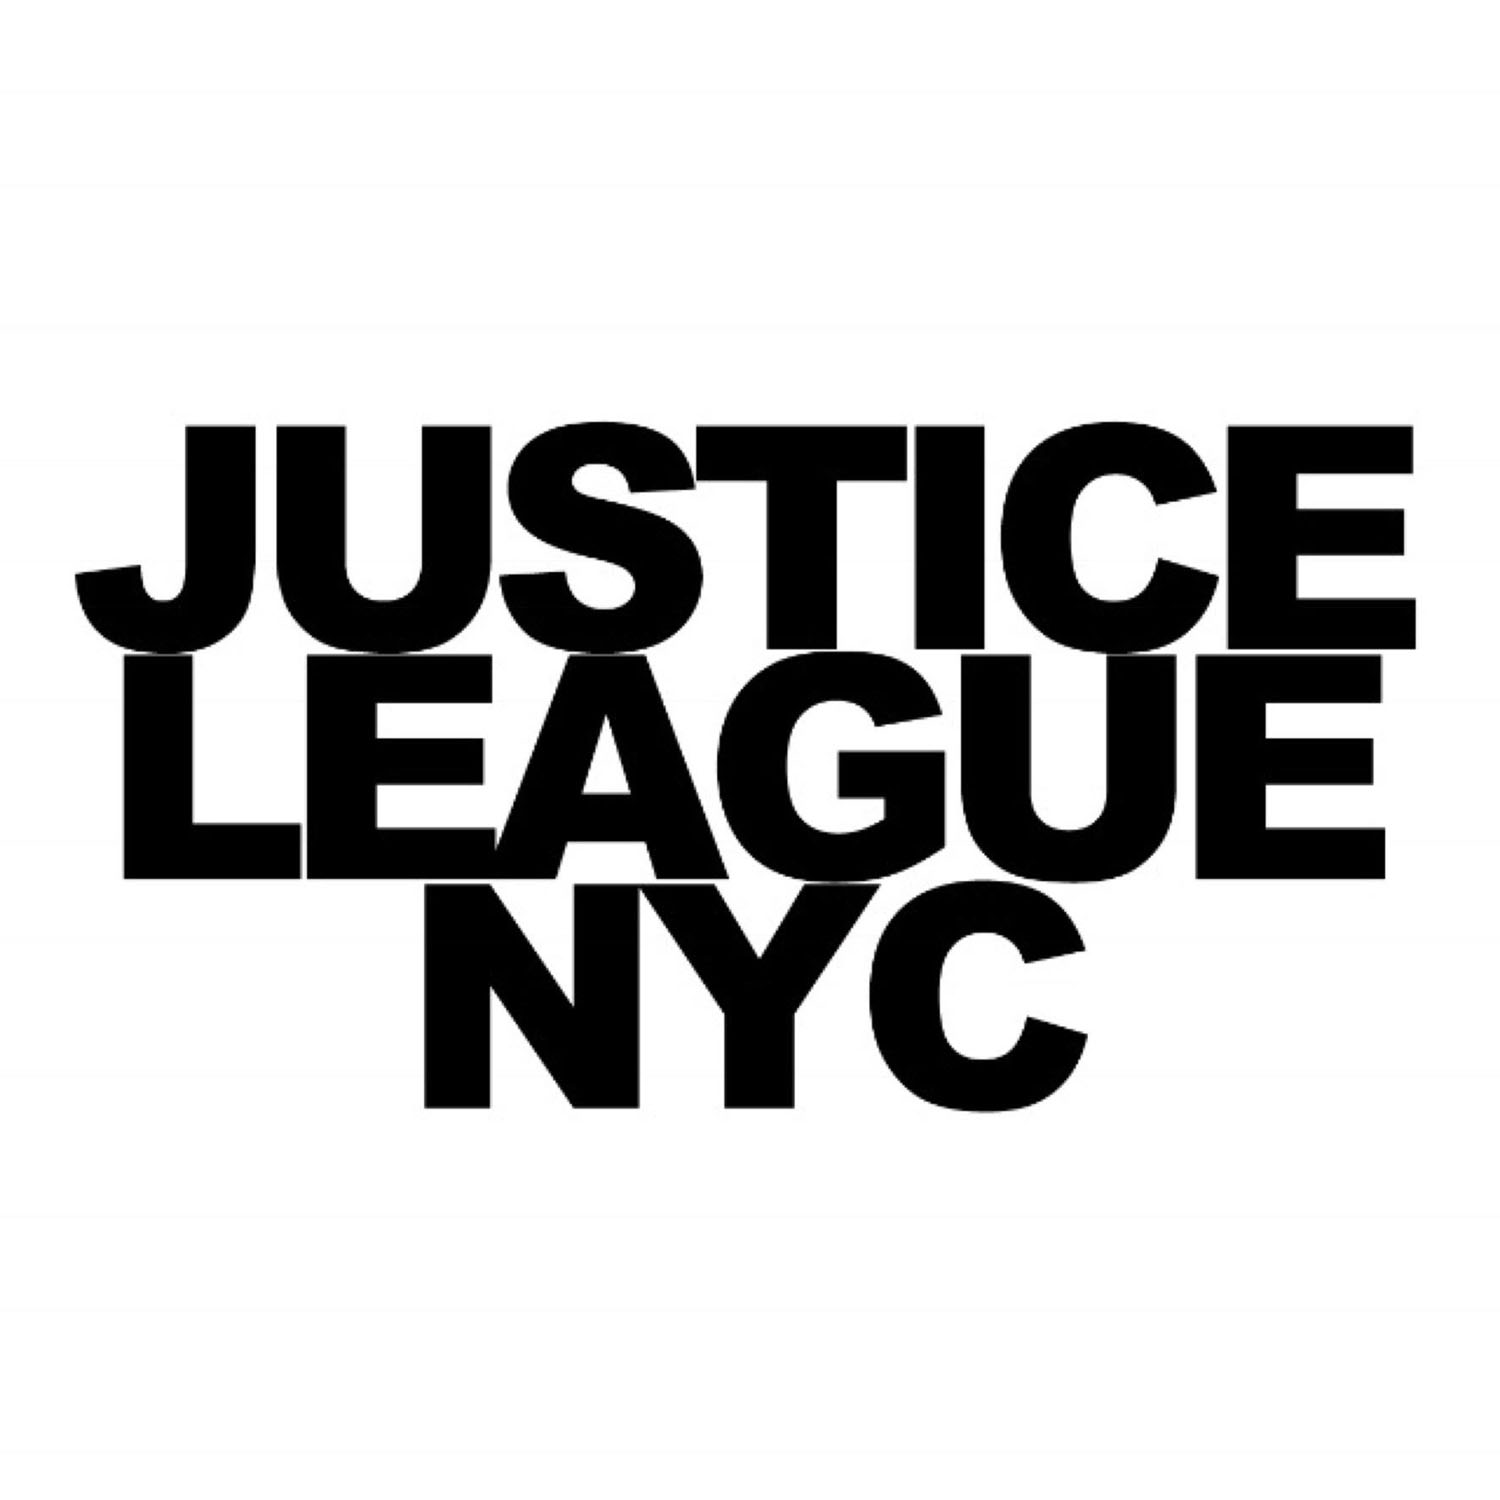 Justice League NYC